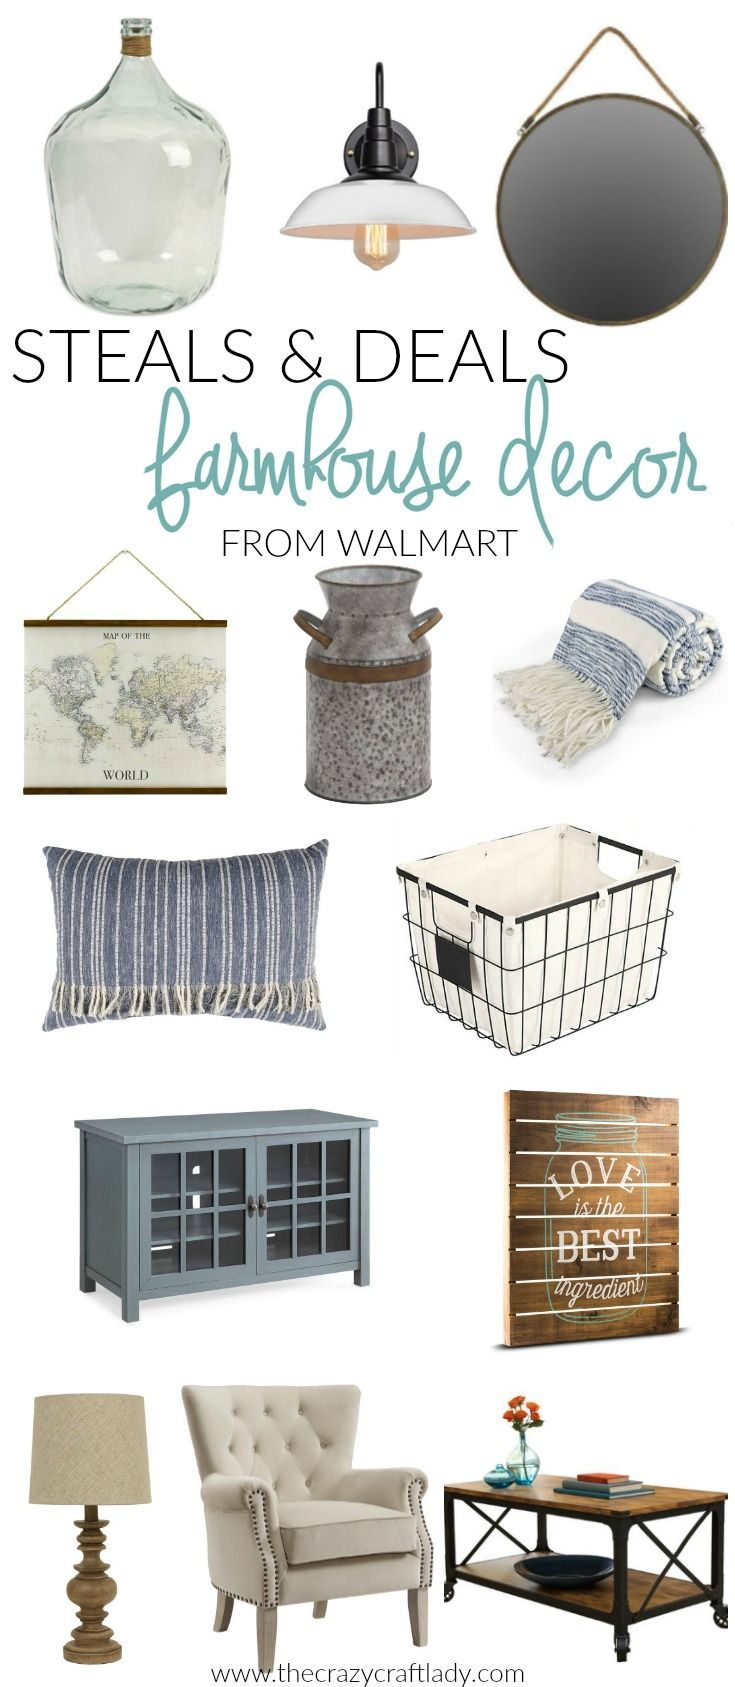 Have you shopped at Walmart for home decor lately? You should! Check out my picks for Walmart farmhouse decor, and prepare to be surprised. You will love these farmhouse style picks, from wire baskets, to lighting, to furniture, area rugs, and more.